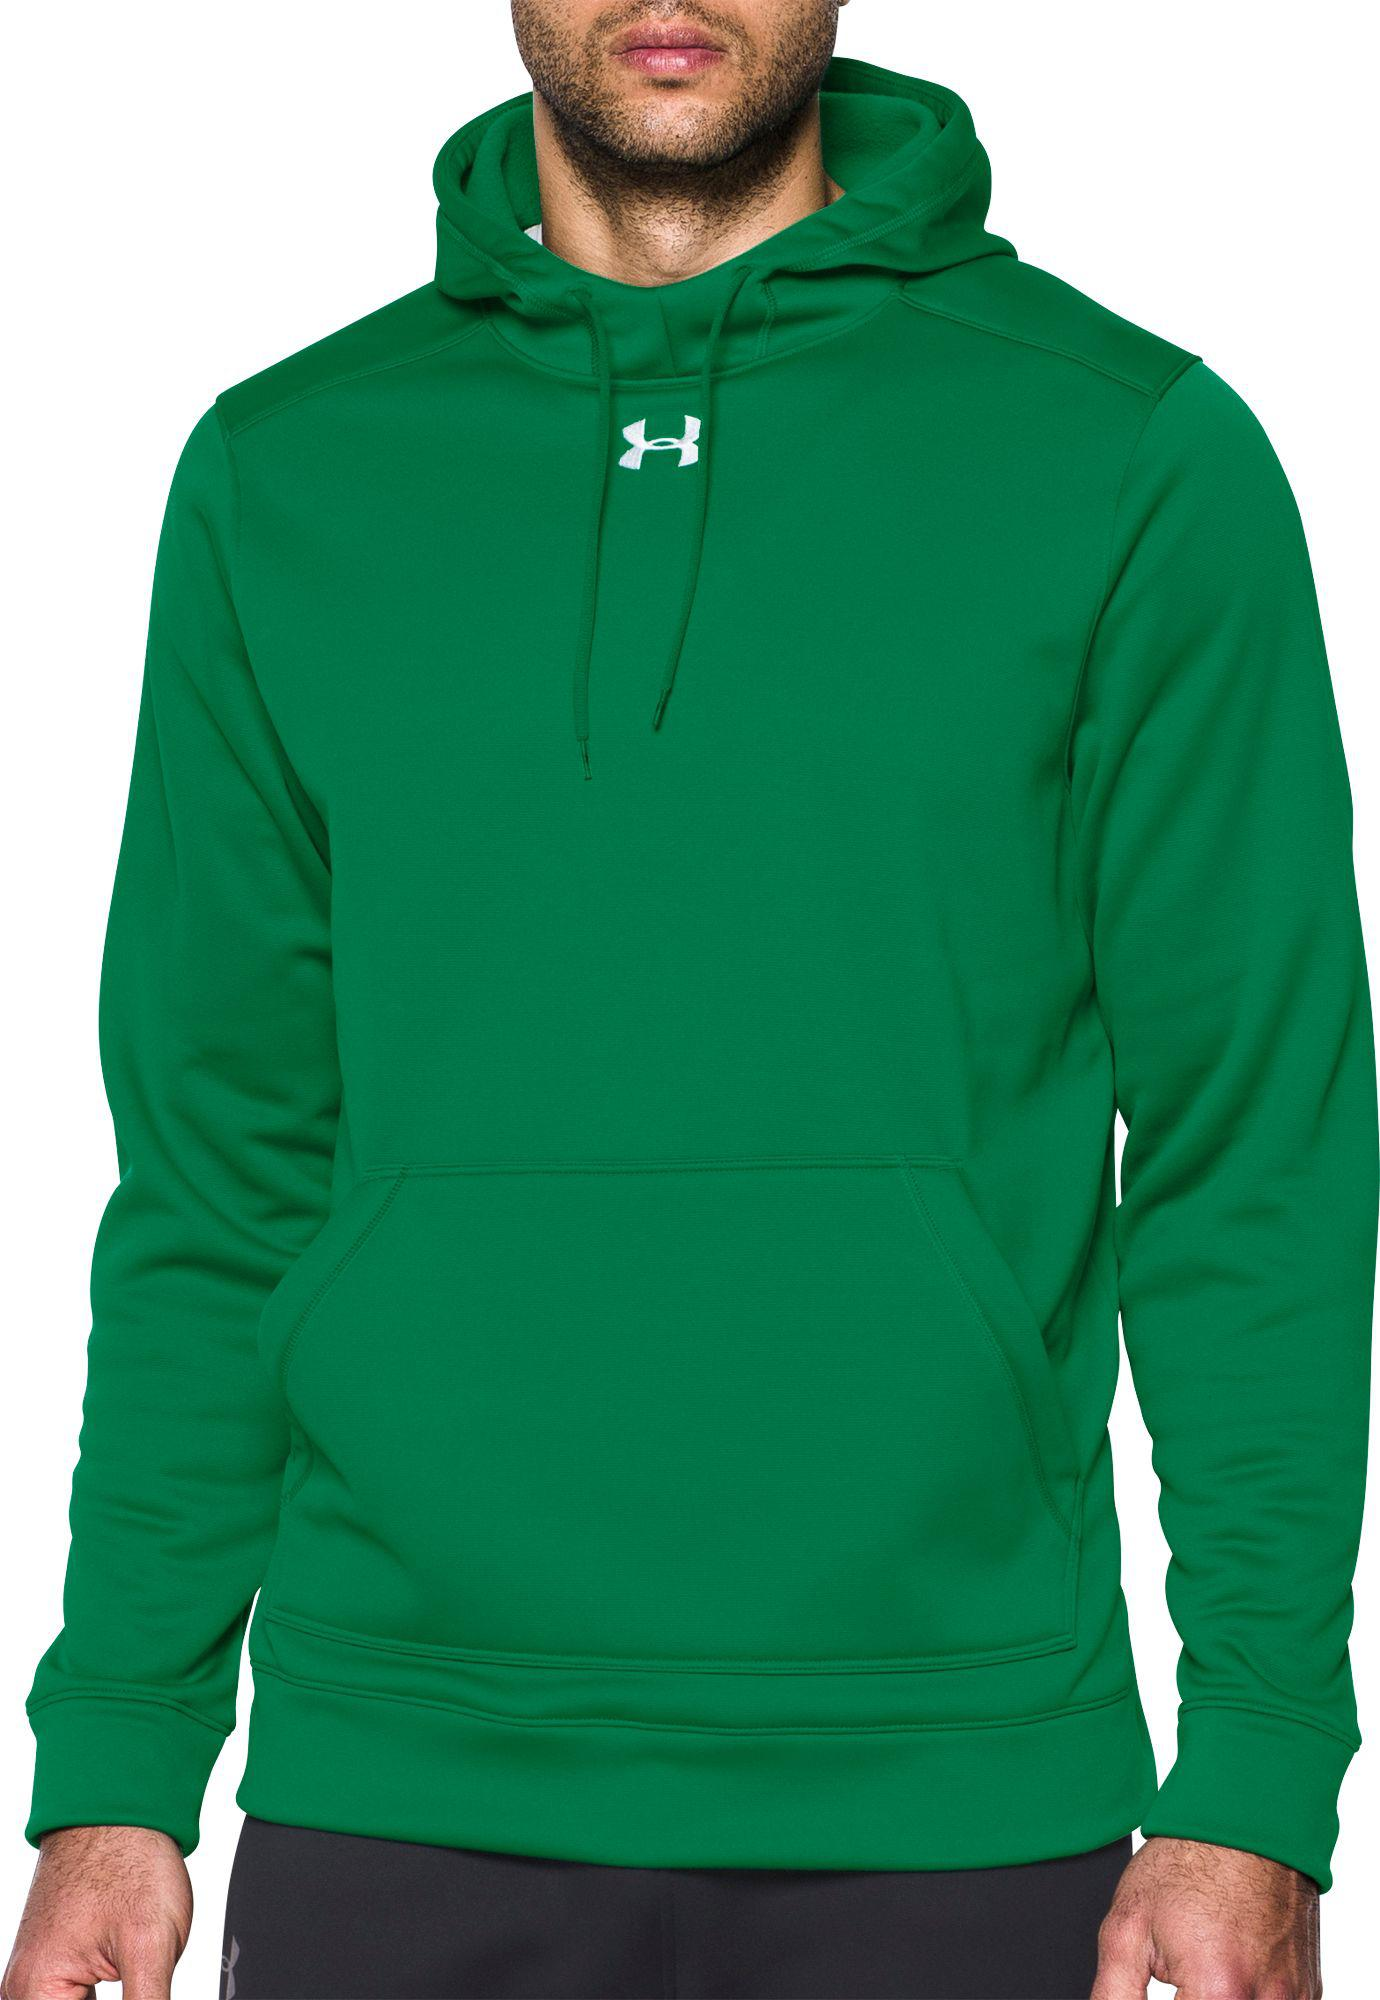 c9e89c91d Under Armour Storm Armour Fleece Team Hoodie in Green for Men - Lyst